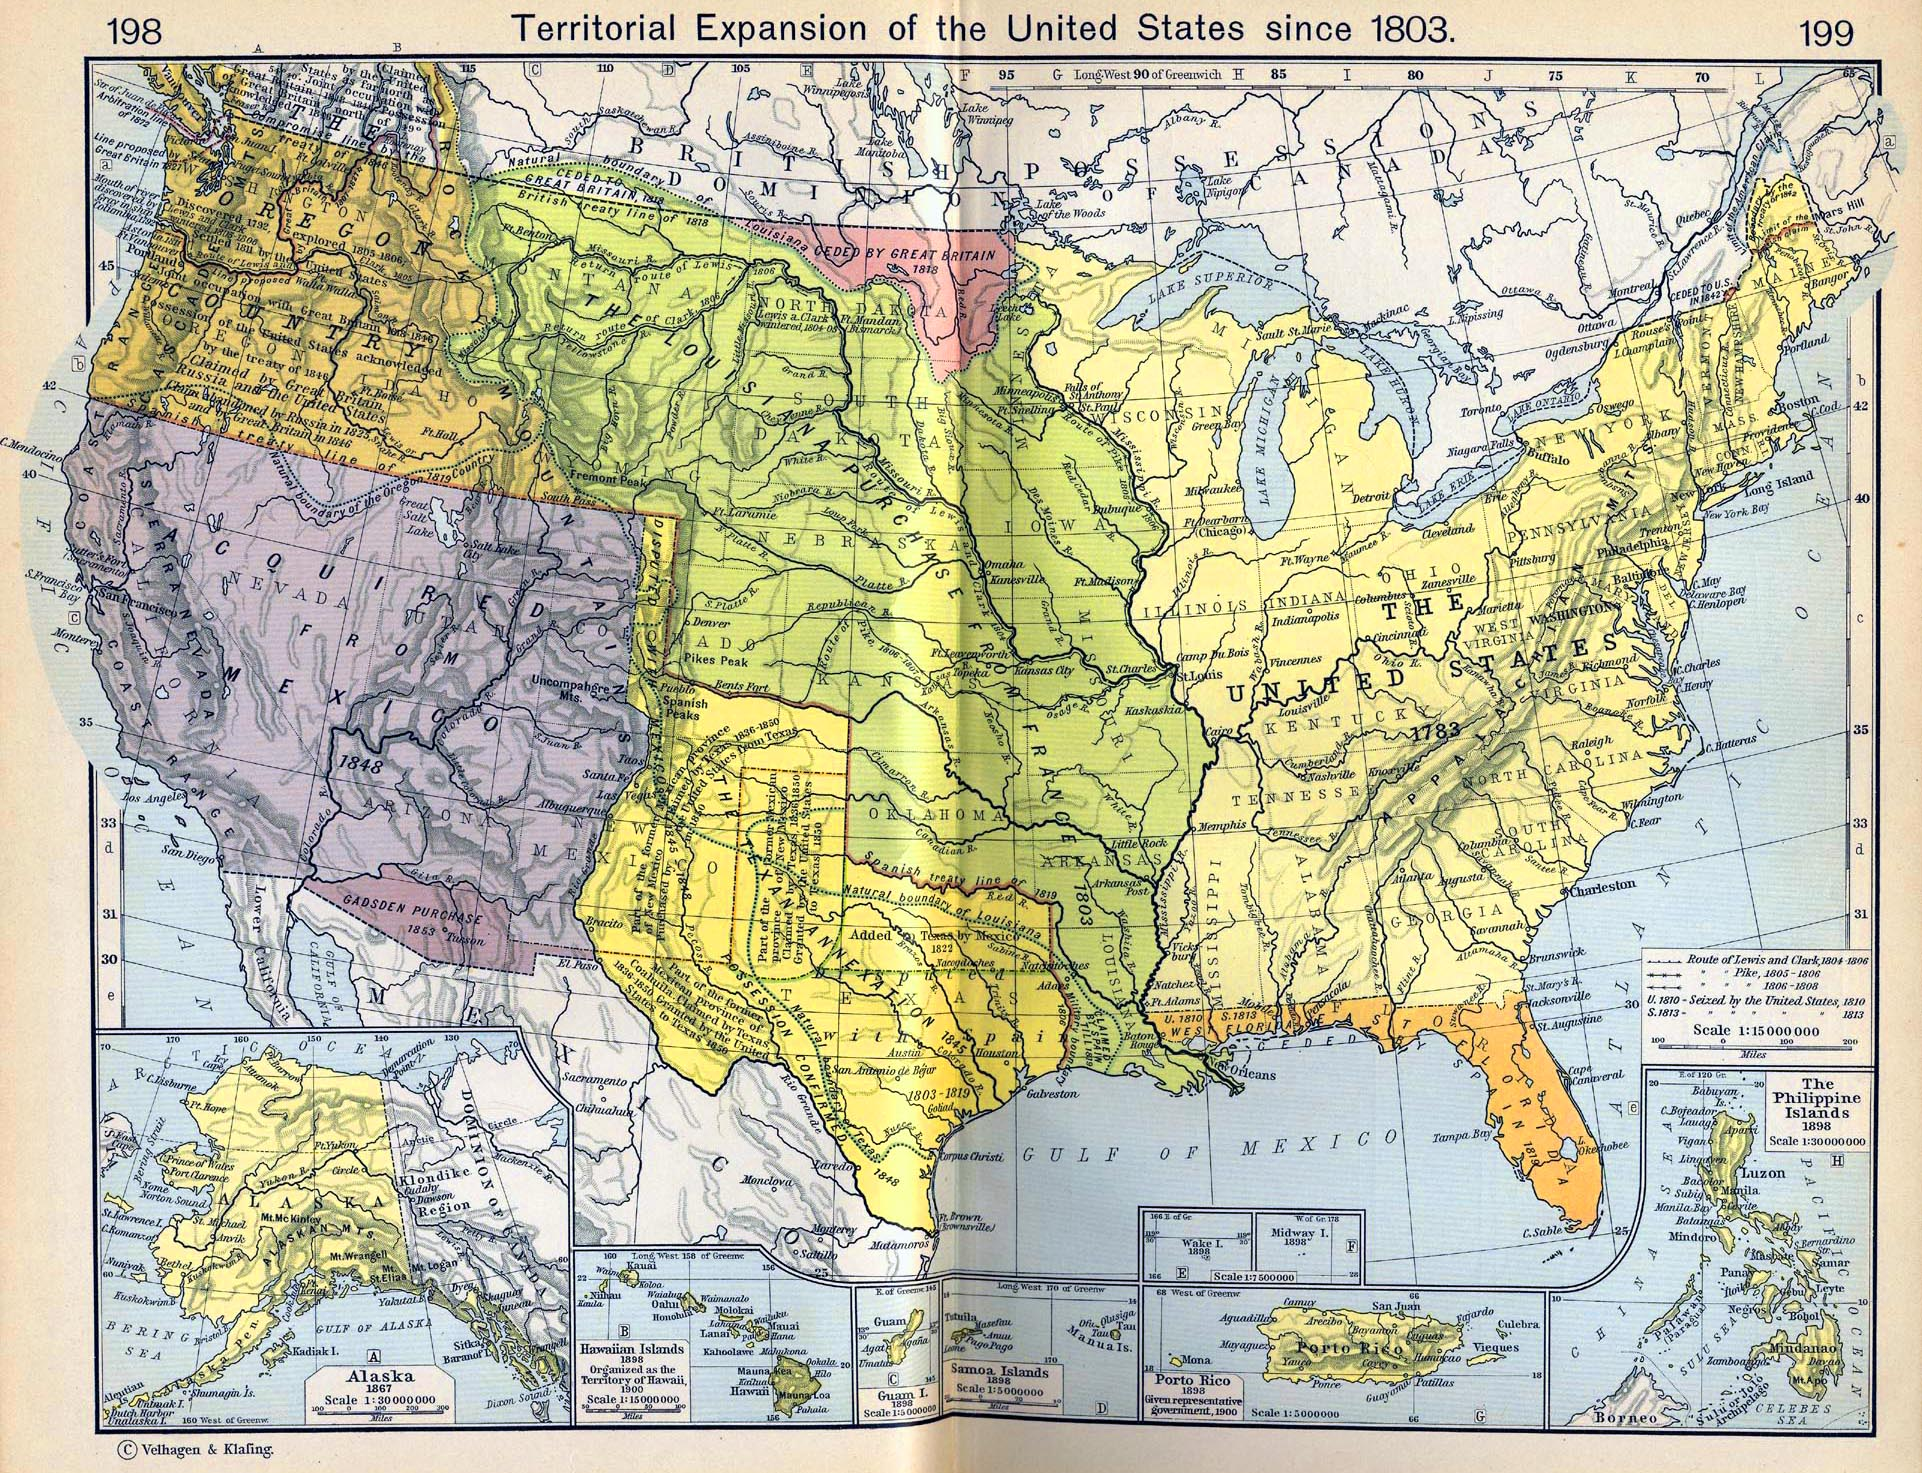 Map Of The Territorial Expansion Of The United States Since 1803 Insets Alaska